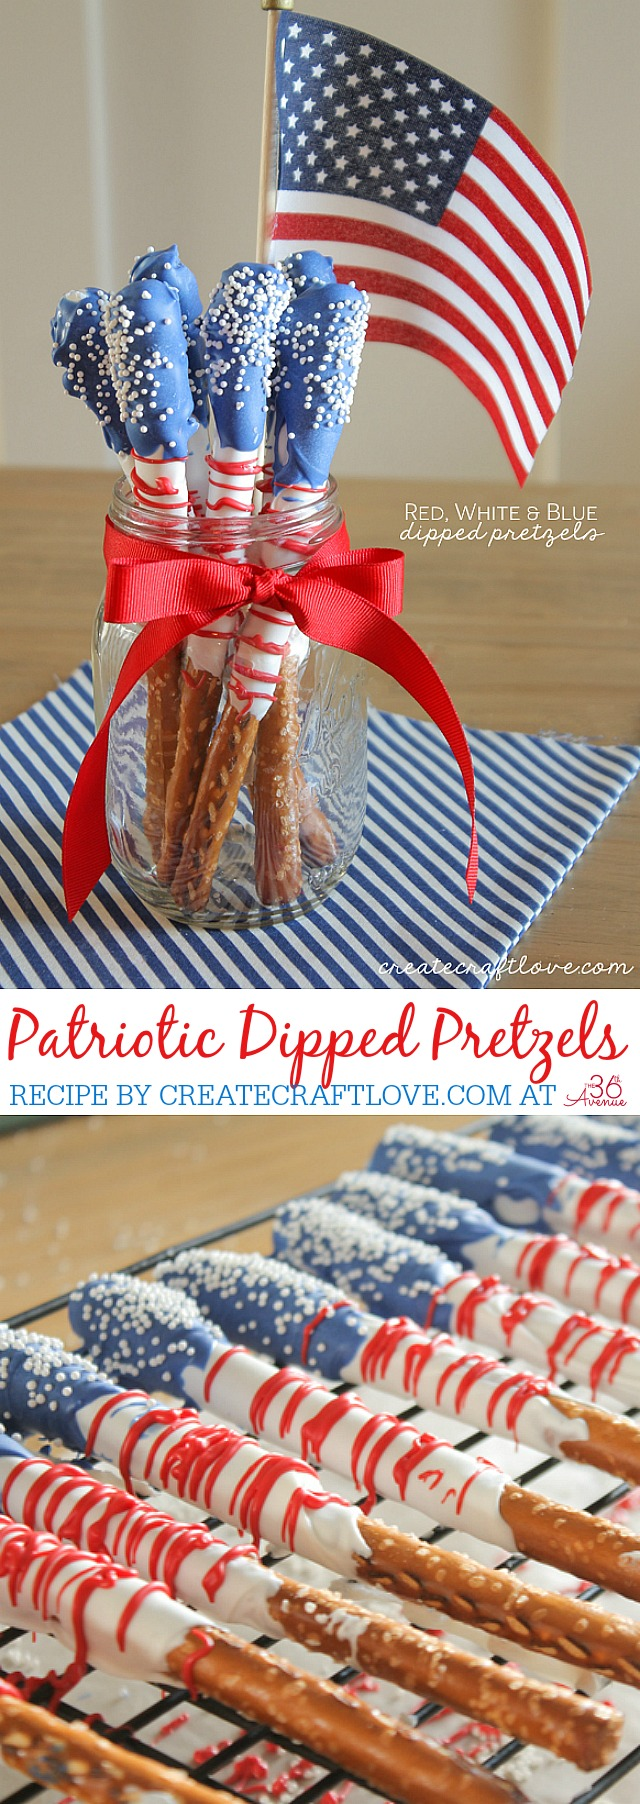 The 36th Avenue Fourth Of July Dessert Dipped Pretzels